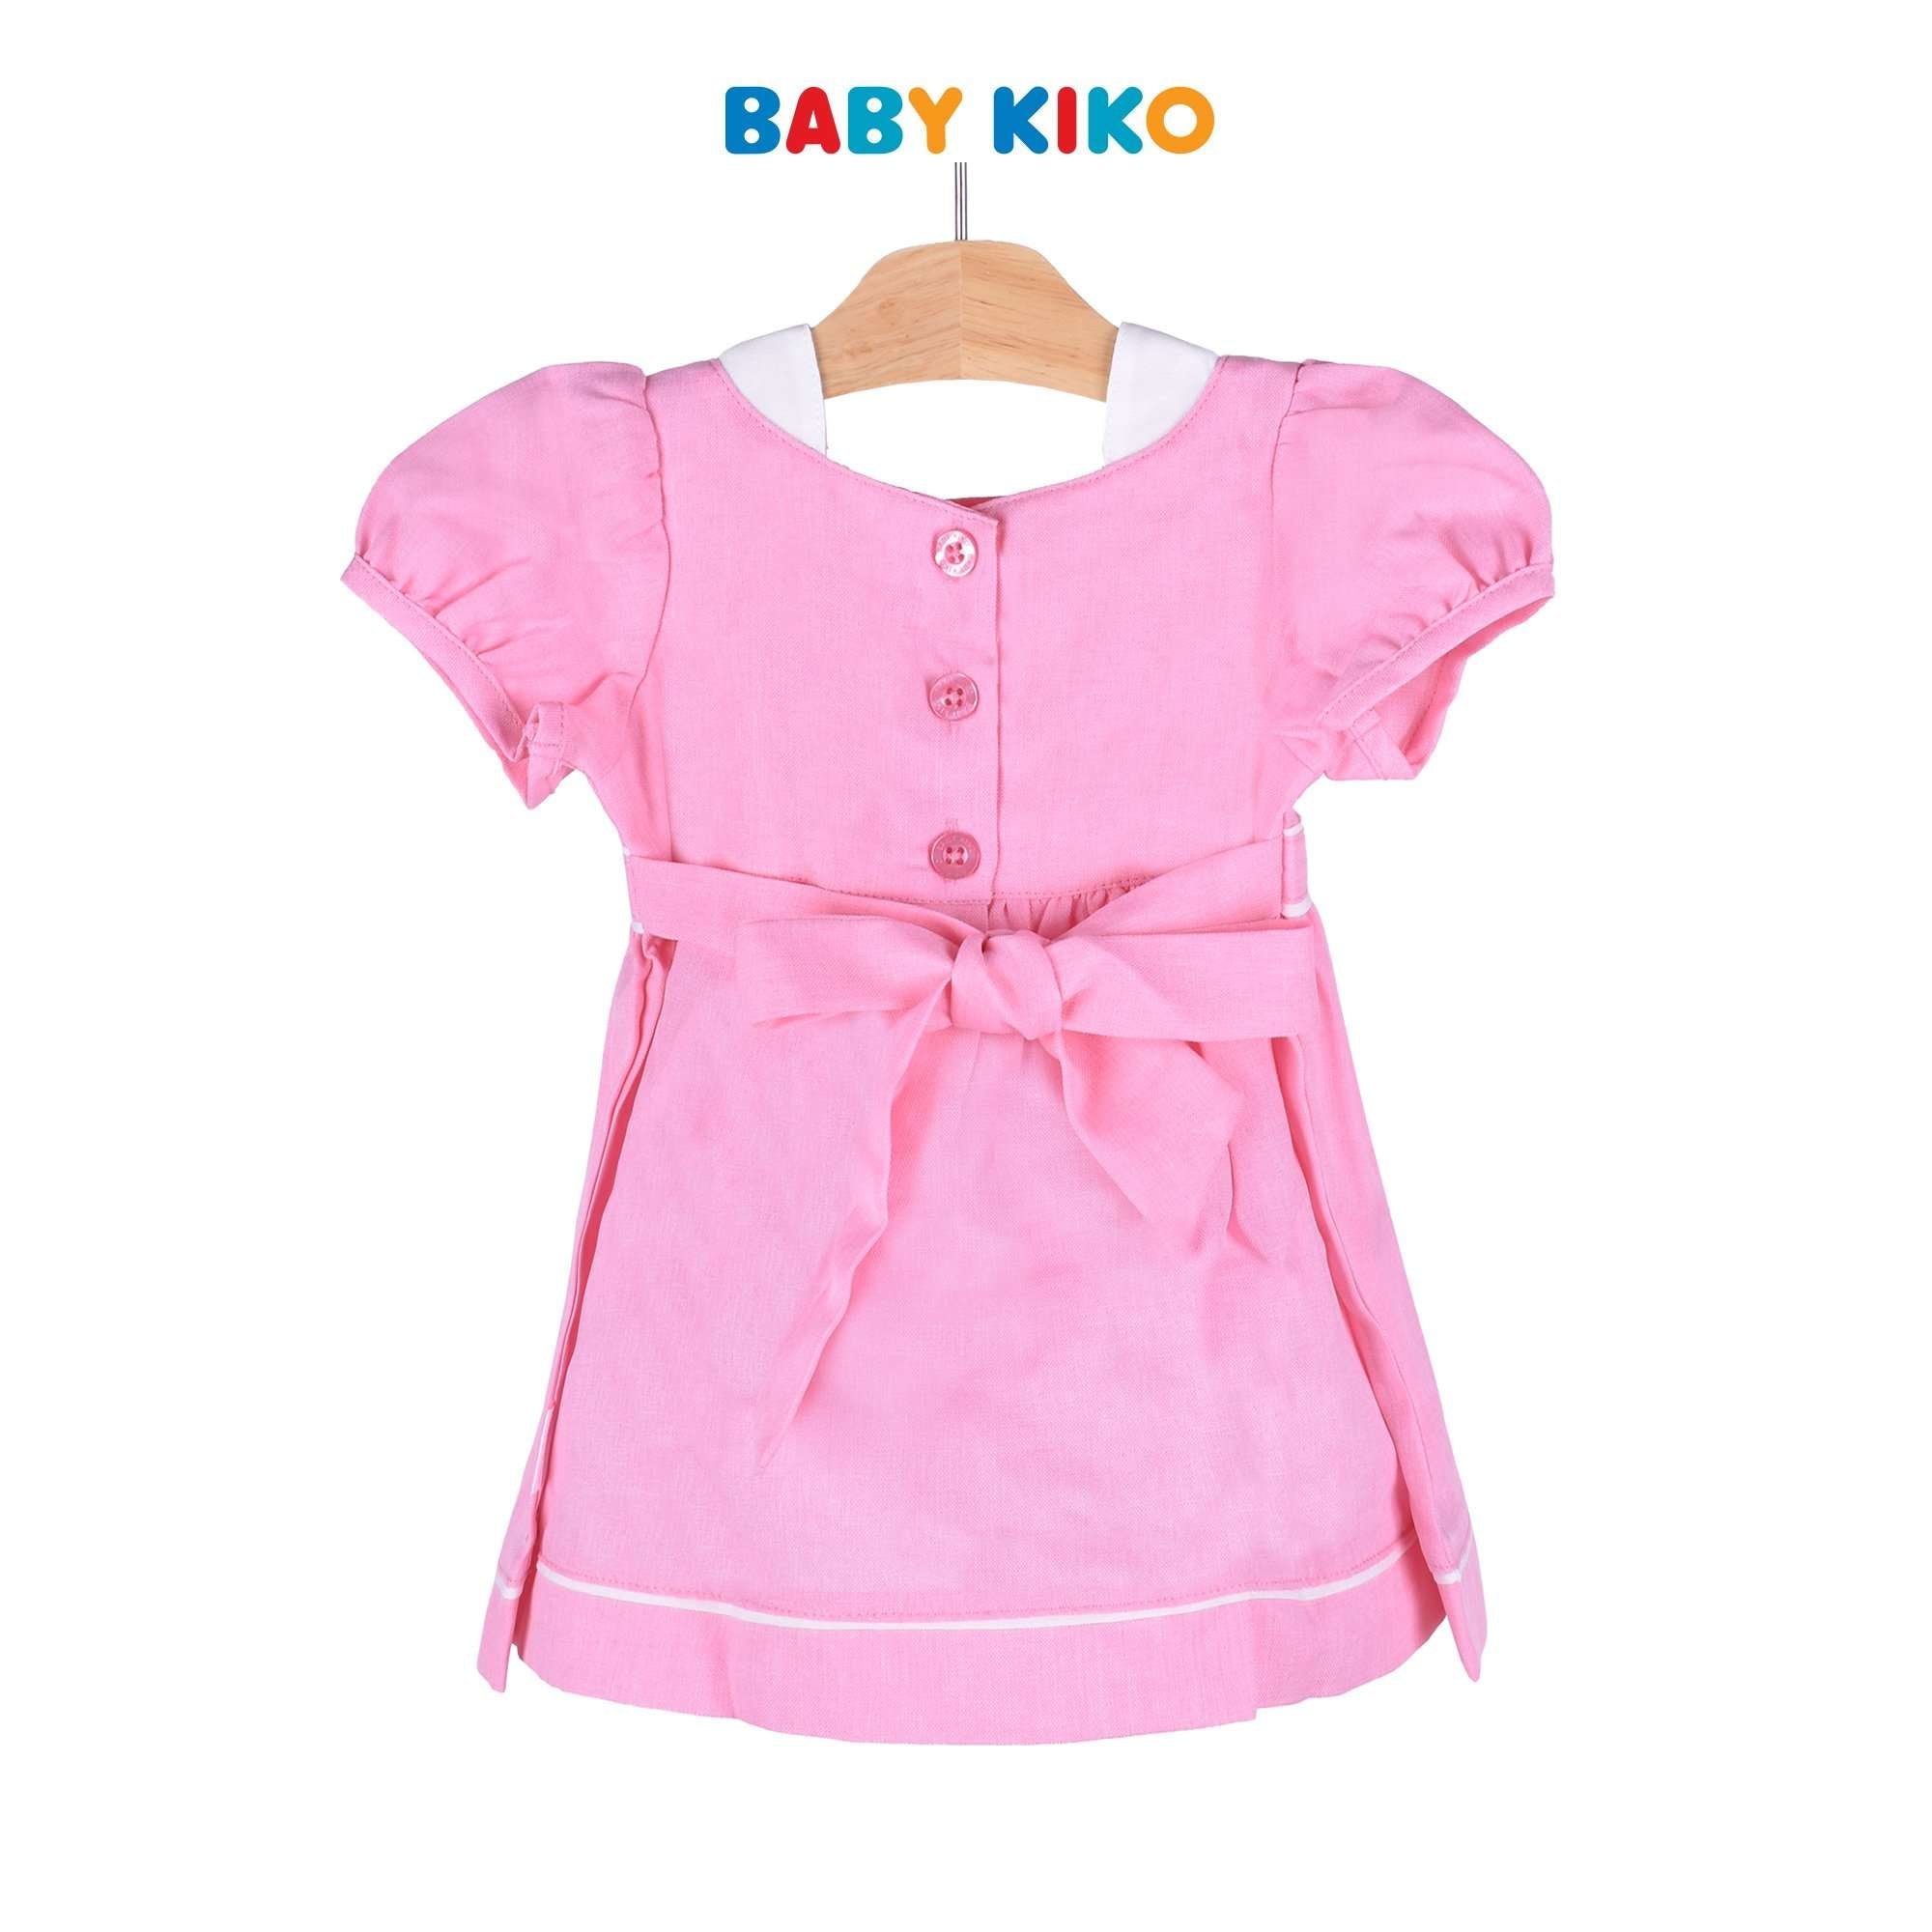 Baby KIKO Baby Girl Short Sleeve Dress Pink Woven 310105-312 : Buy Baby KIKO online at CMG.MY